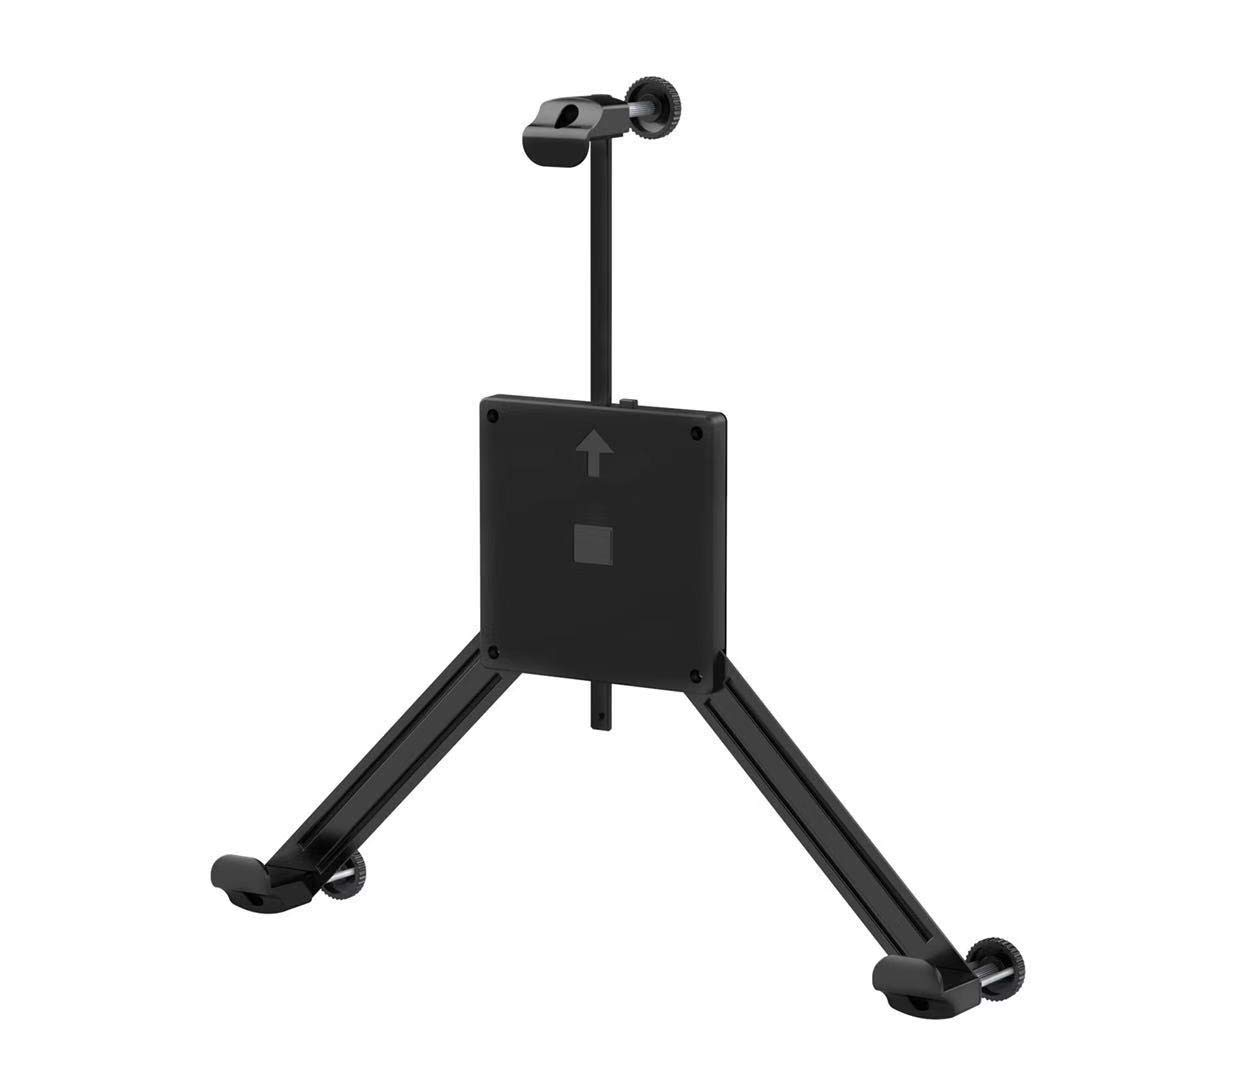 VESA Mount Bracket Adapter Kitv